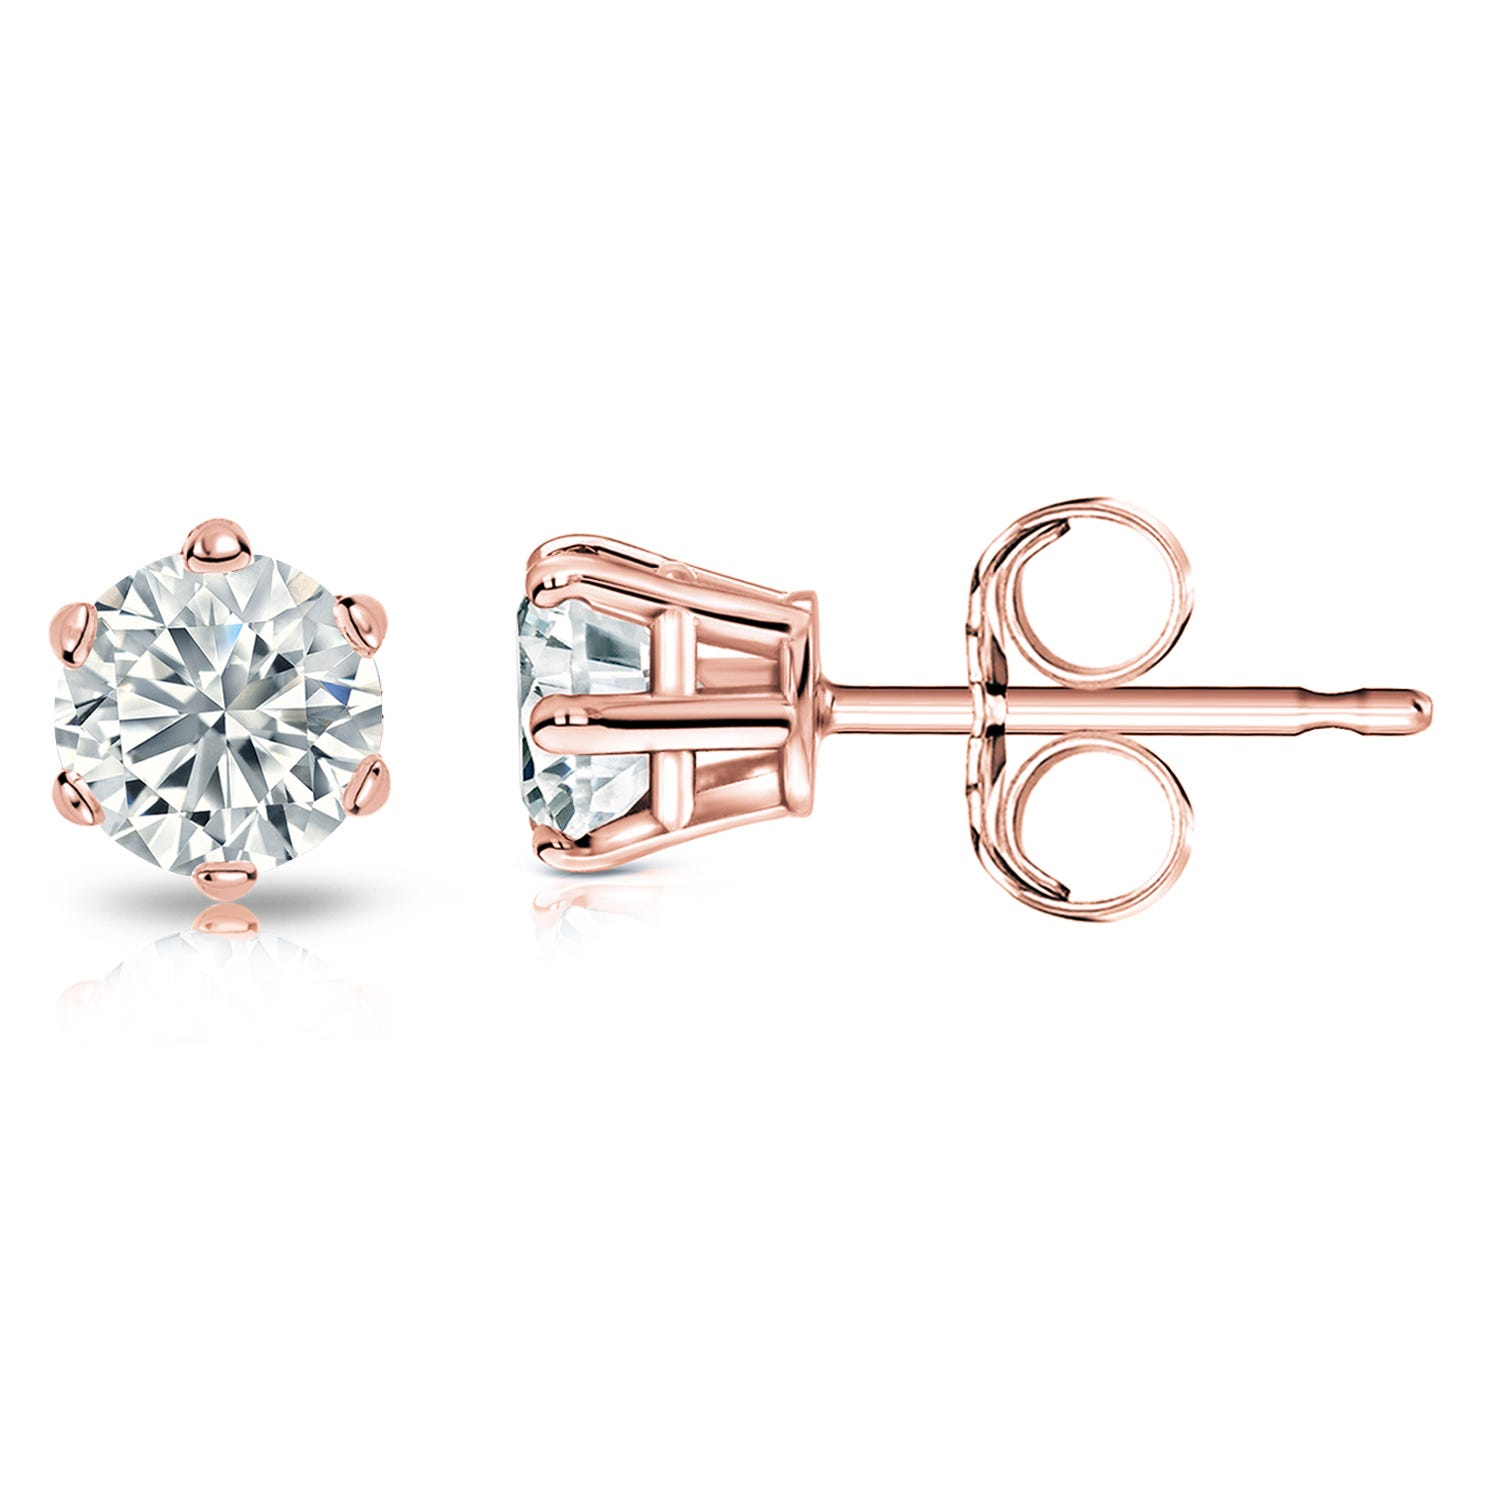 Round Diamond 1ctw. (IJ-I2) Solitaire Stud 6-Prong Earrings in 10K Rose Gold